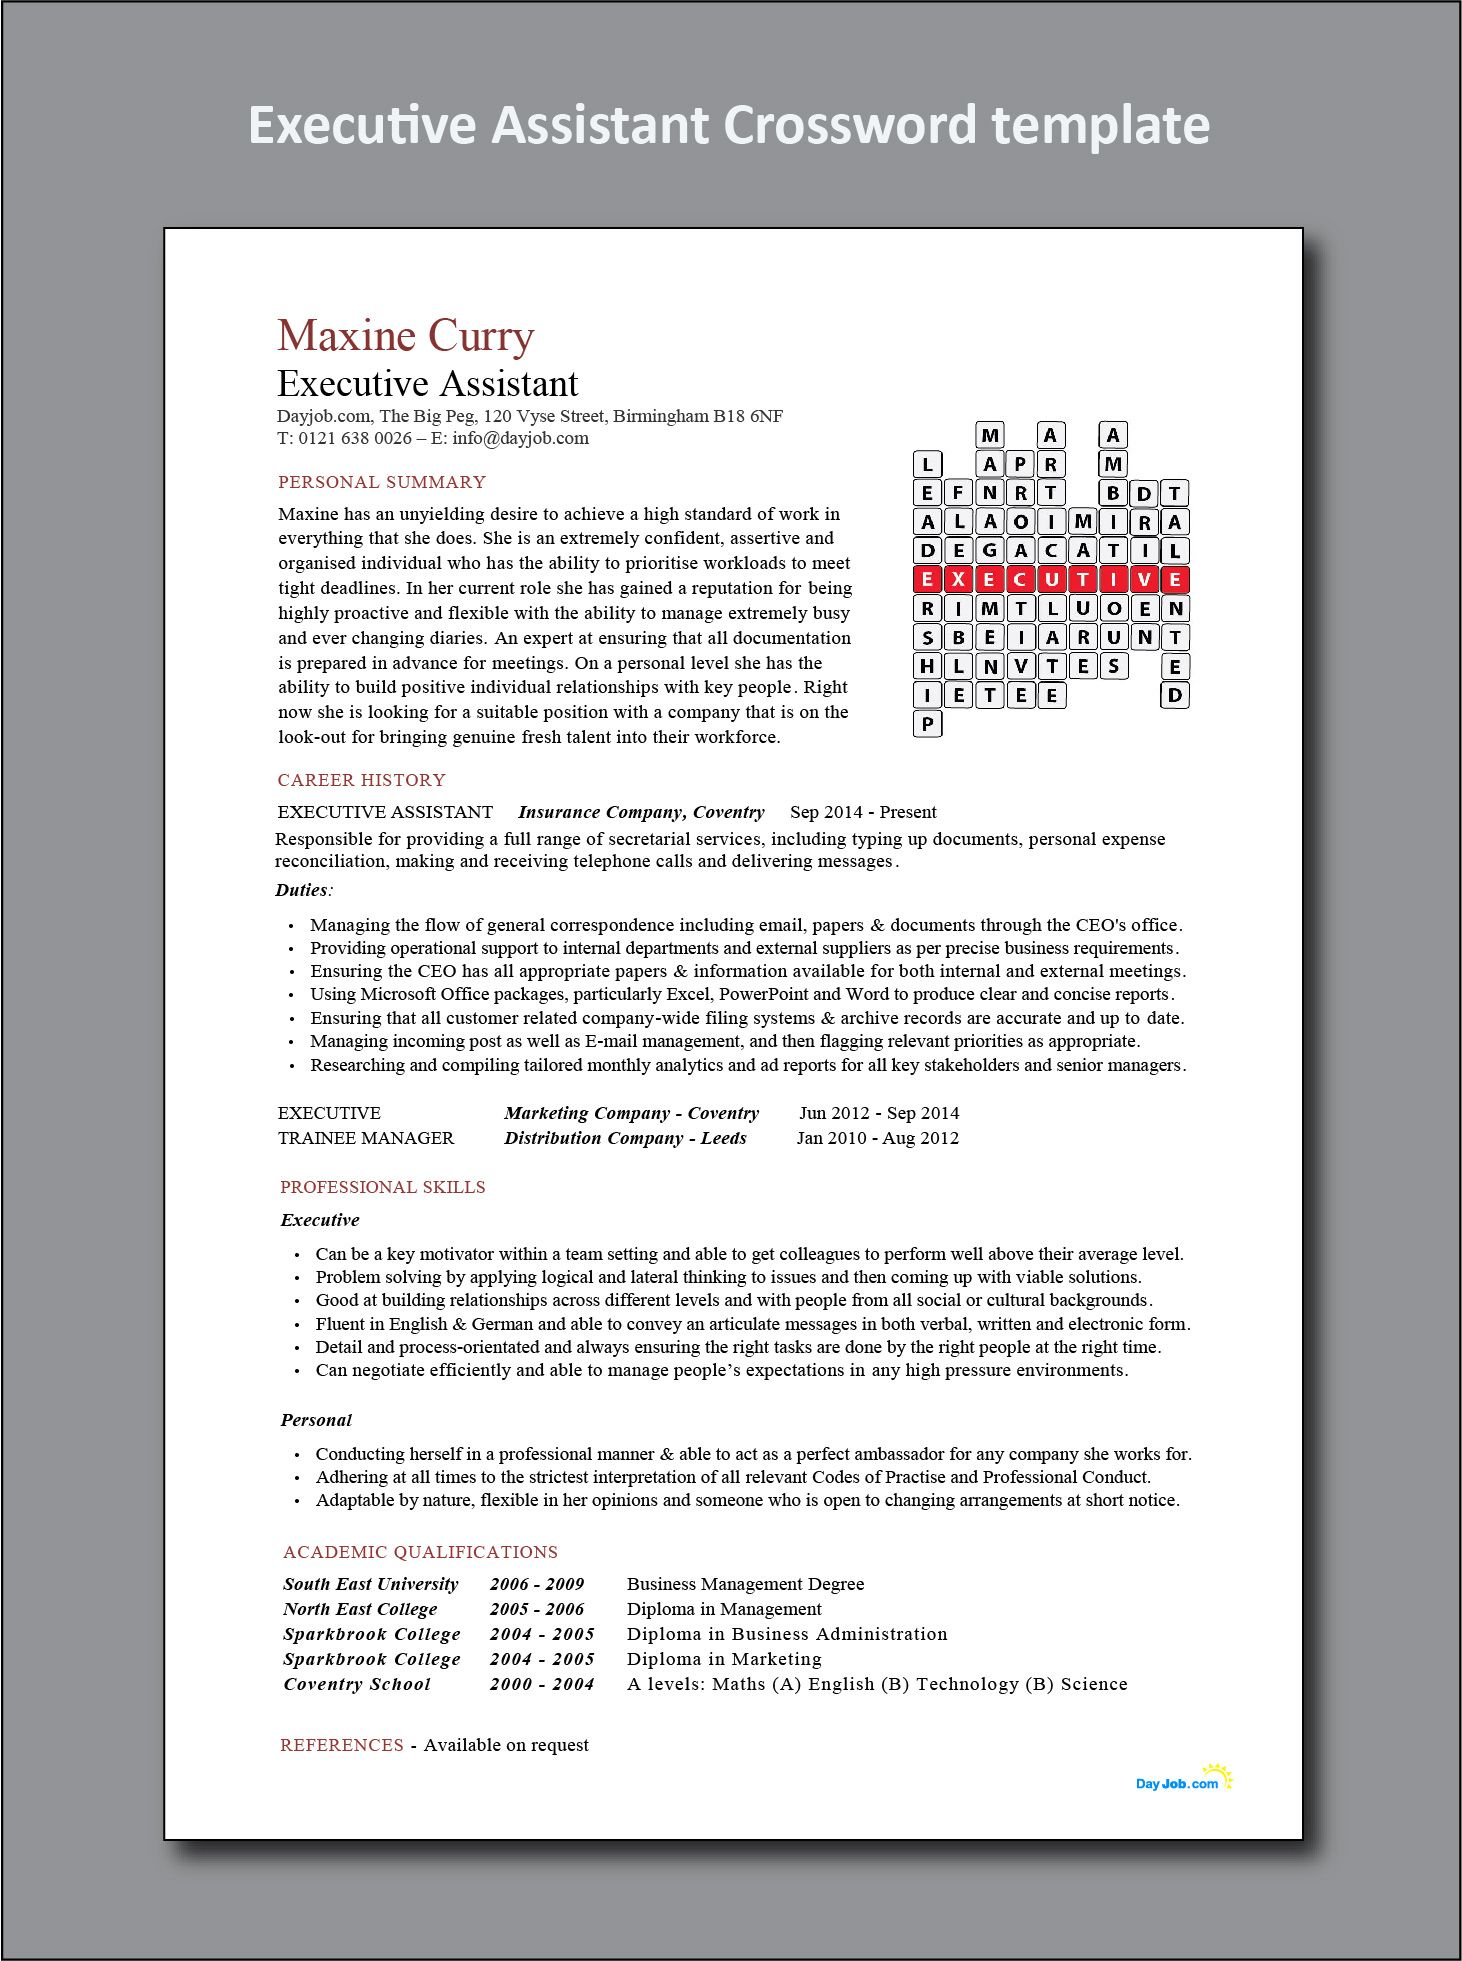 Executive Assistant Crossword Template Cv Resume To Ceo